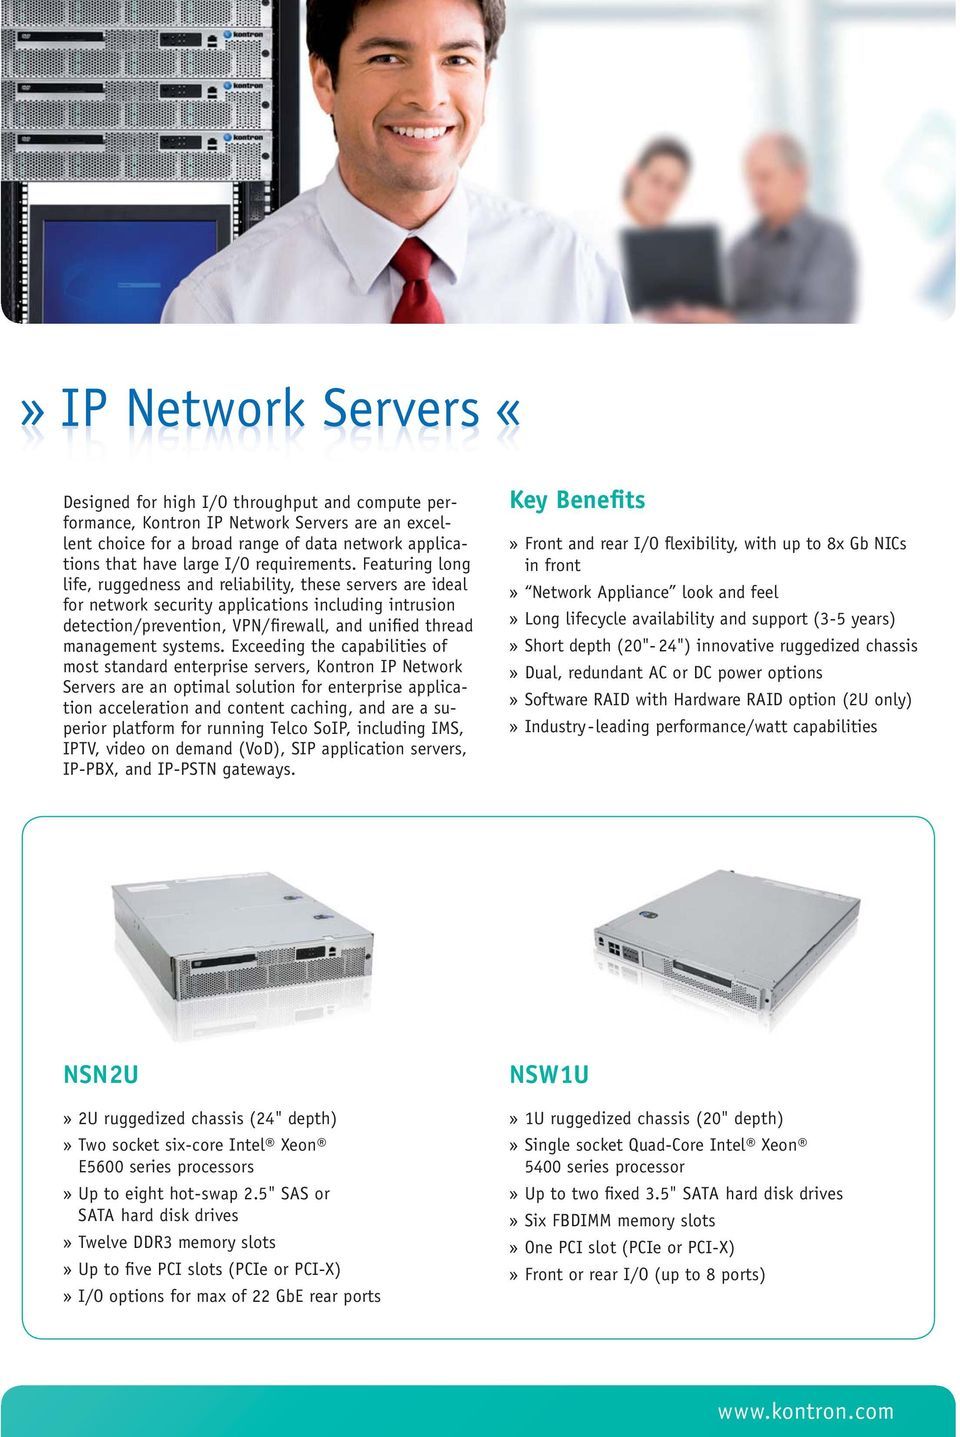 Featuring long life, ruggedness and reliability, these servers are ideal for network security applications including intrusion detection/prevention, VPN/firewall, and unified thread management